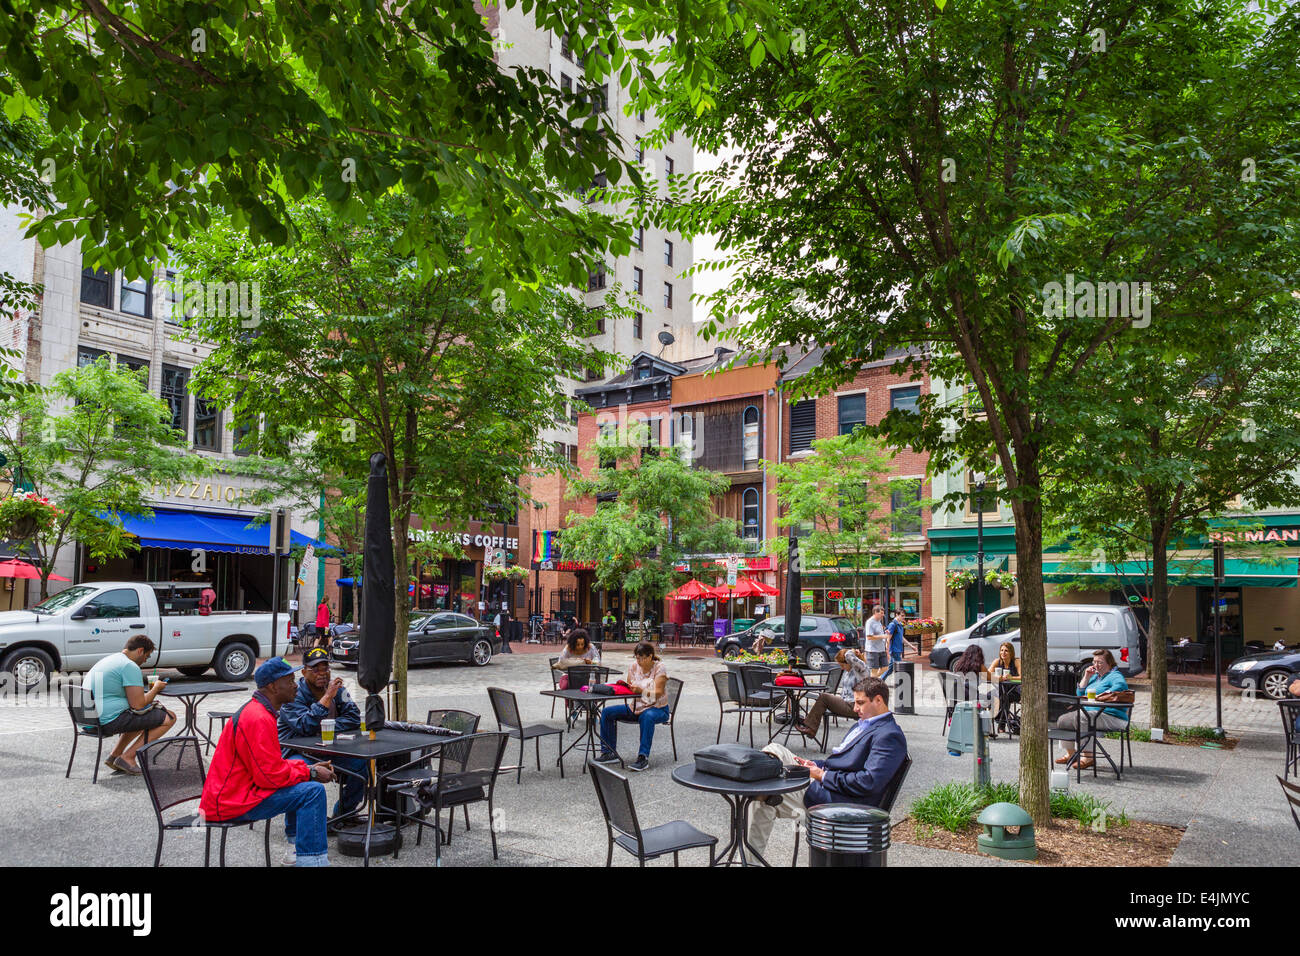 Market Square in downtown Pittsburgh, Pennsylvania, USA - Stock Image